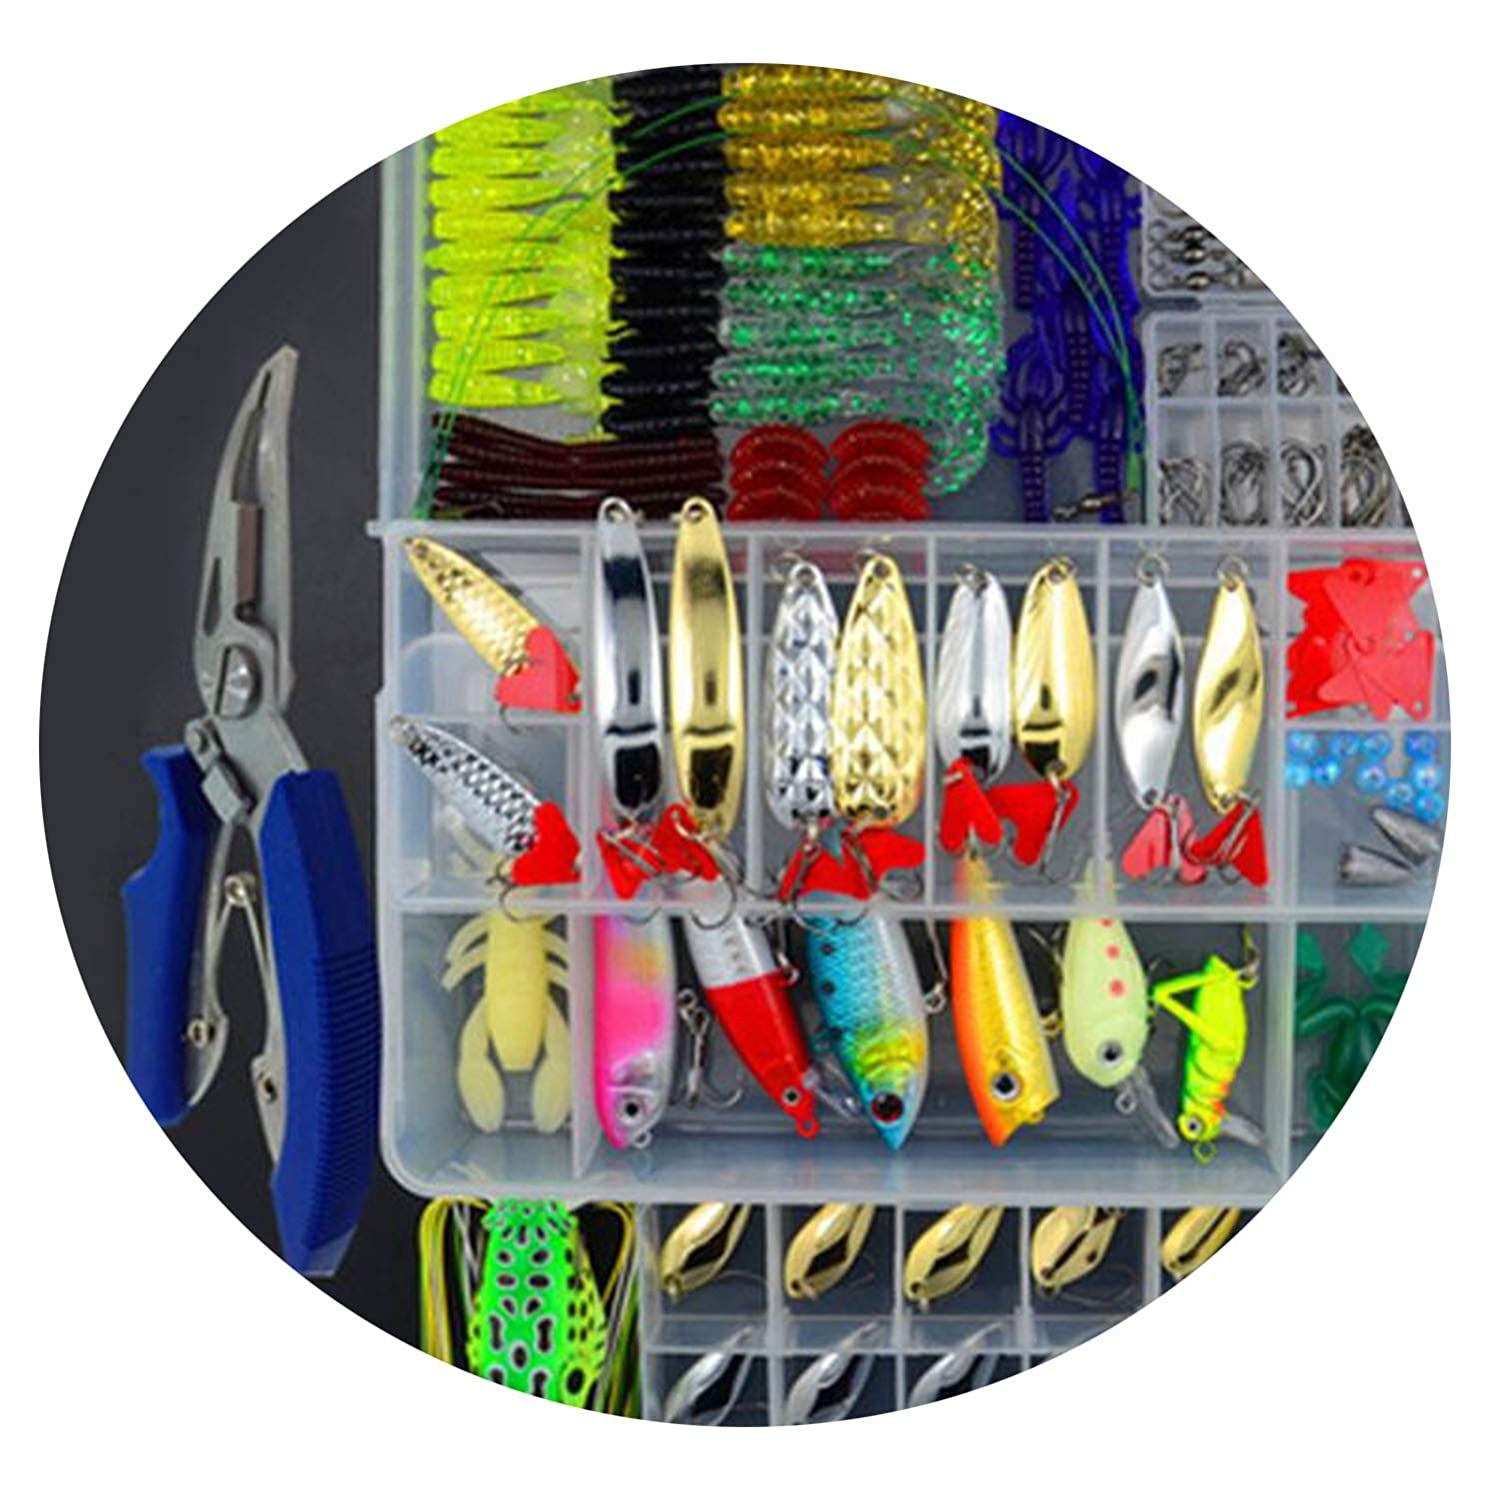 207pcs and plier 205 206 207Pcs Fishing Lures Set Mixed Plier Grip Spoon Hooks Soft Lure Kit in Box Artificial Bait Fishing